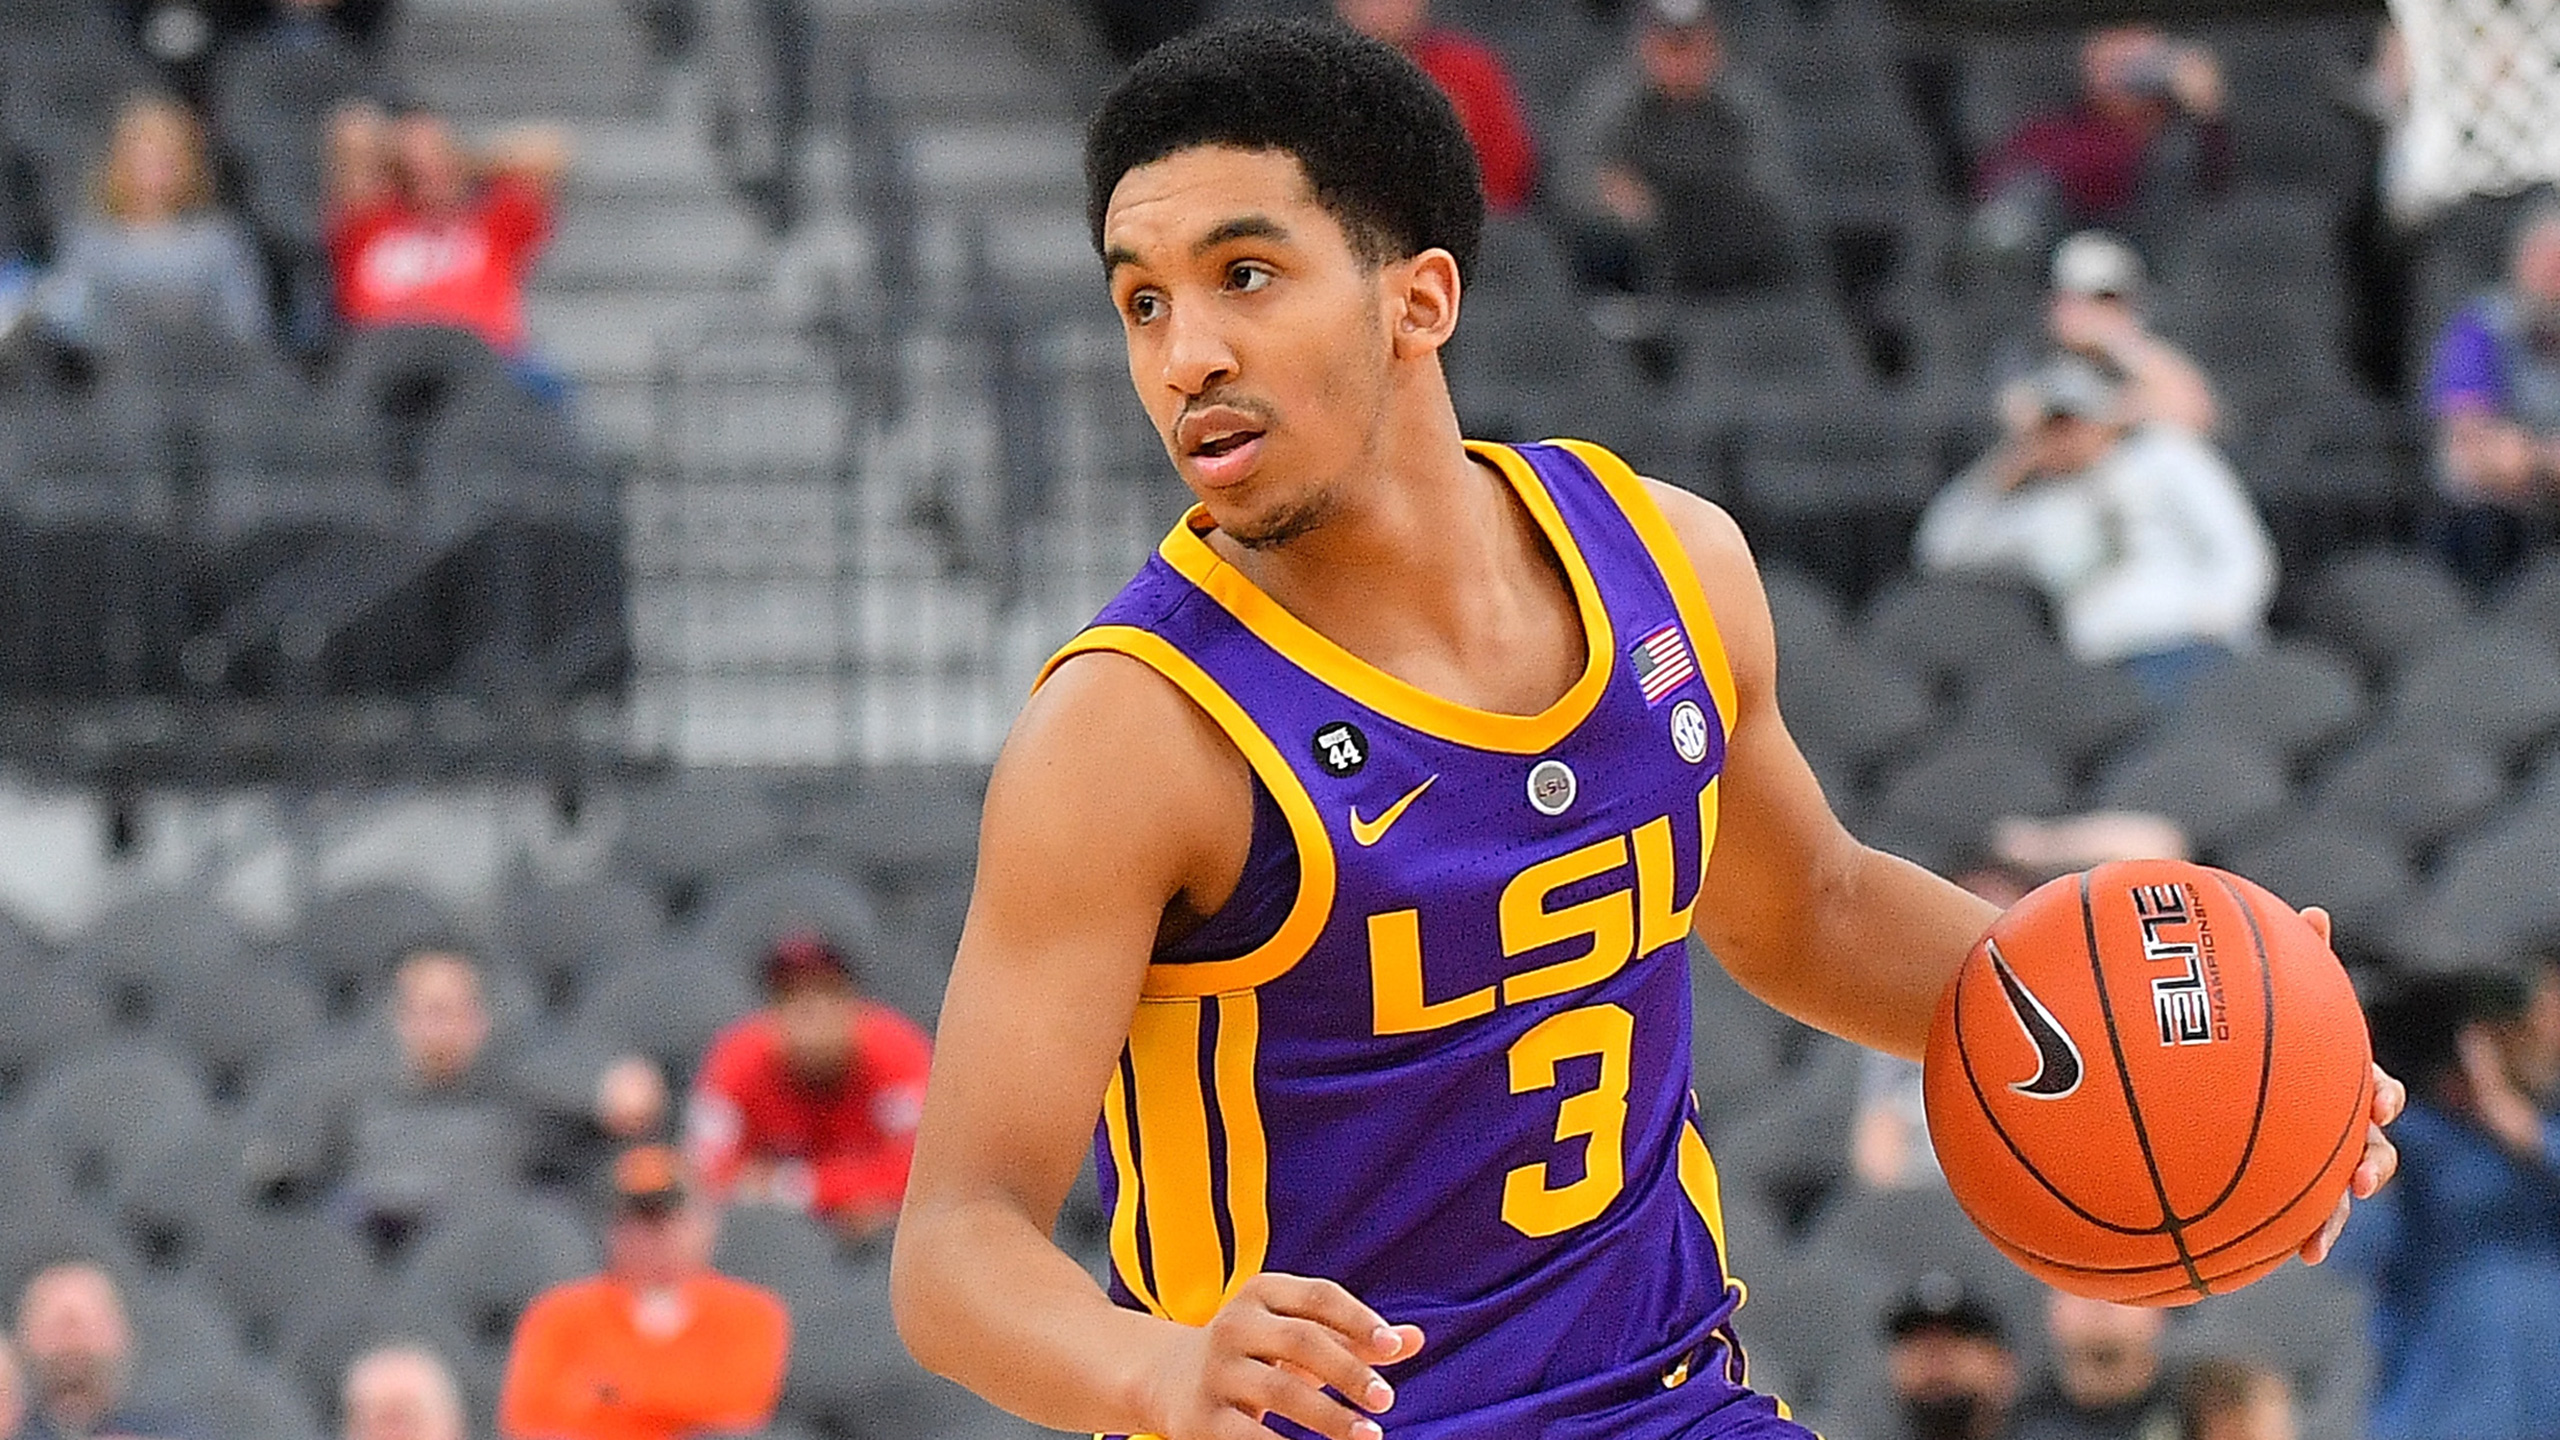 #19 LSU vs. Georgia (M Basketball) (re-air)